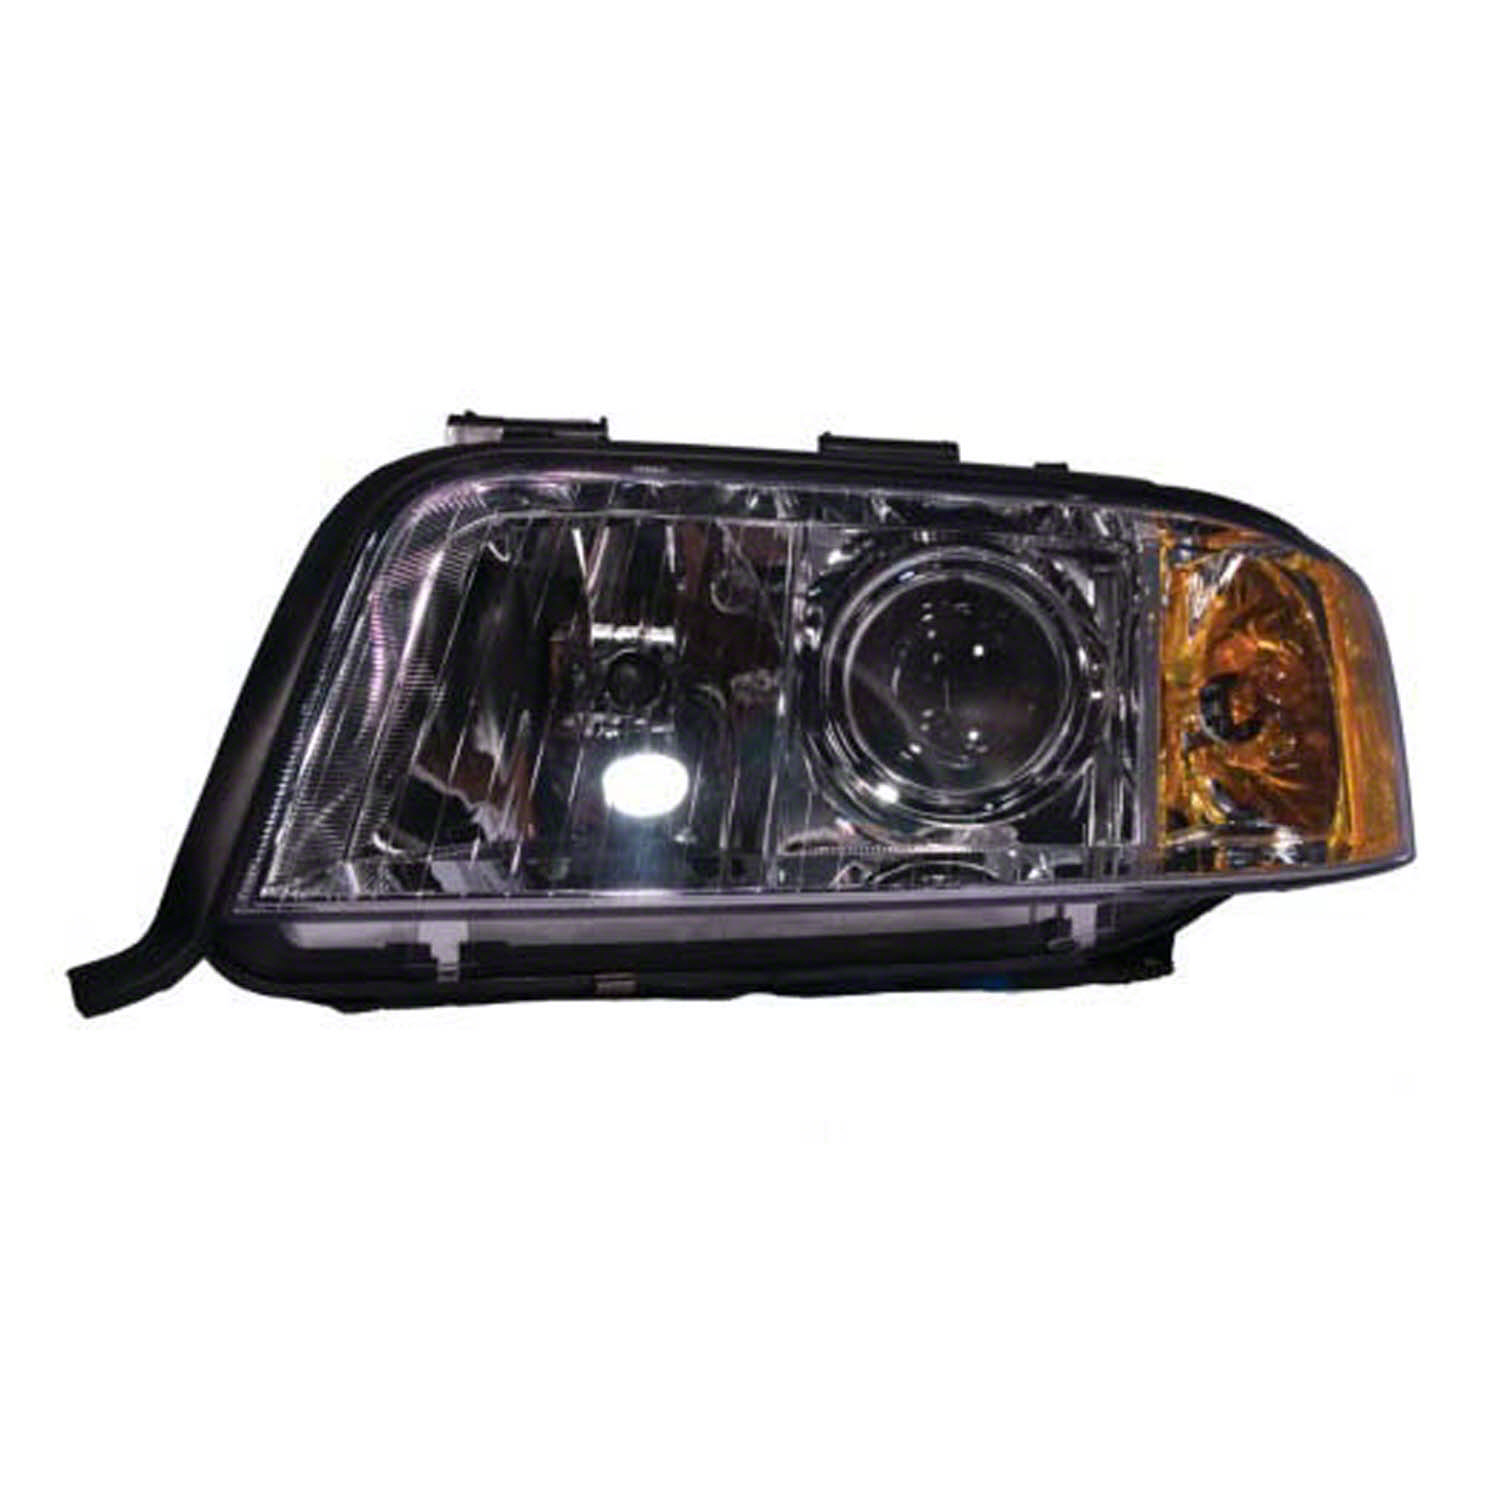 2002-2004 Audi A6  Driver Side Left Head Lamp Assembly 4B0941003BM incl HID Lamp